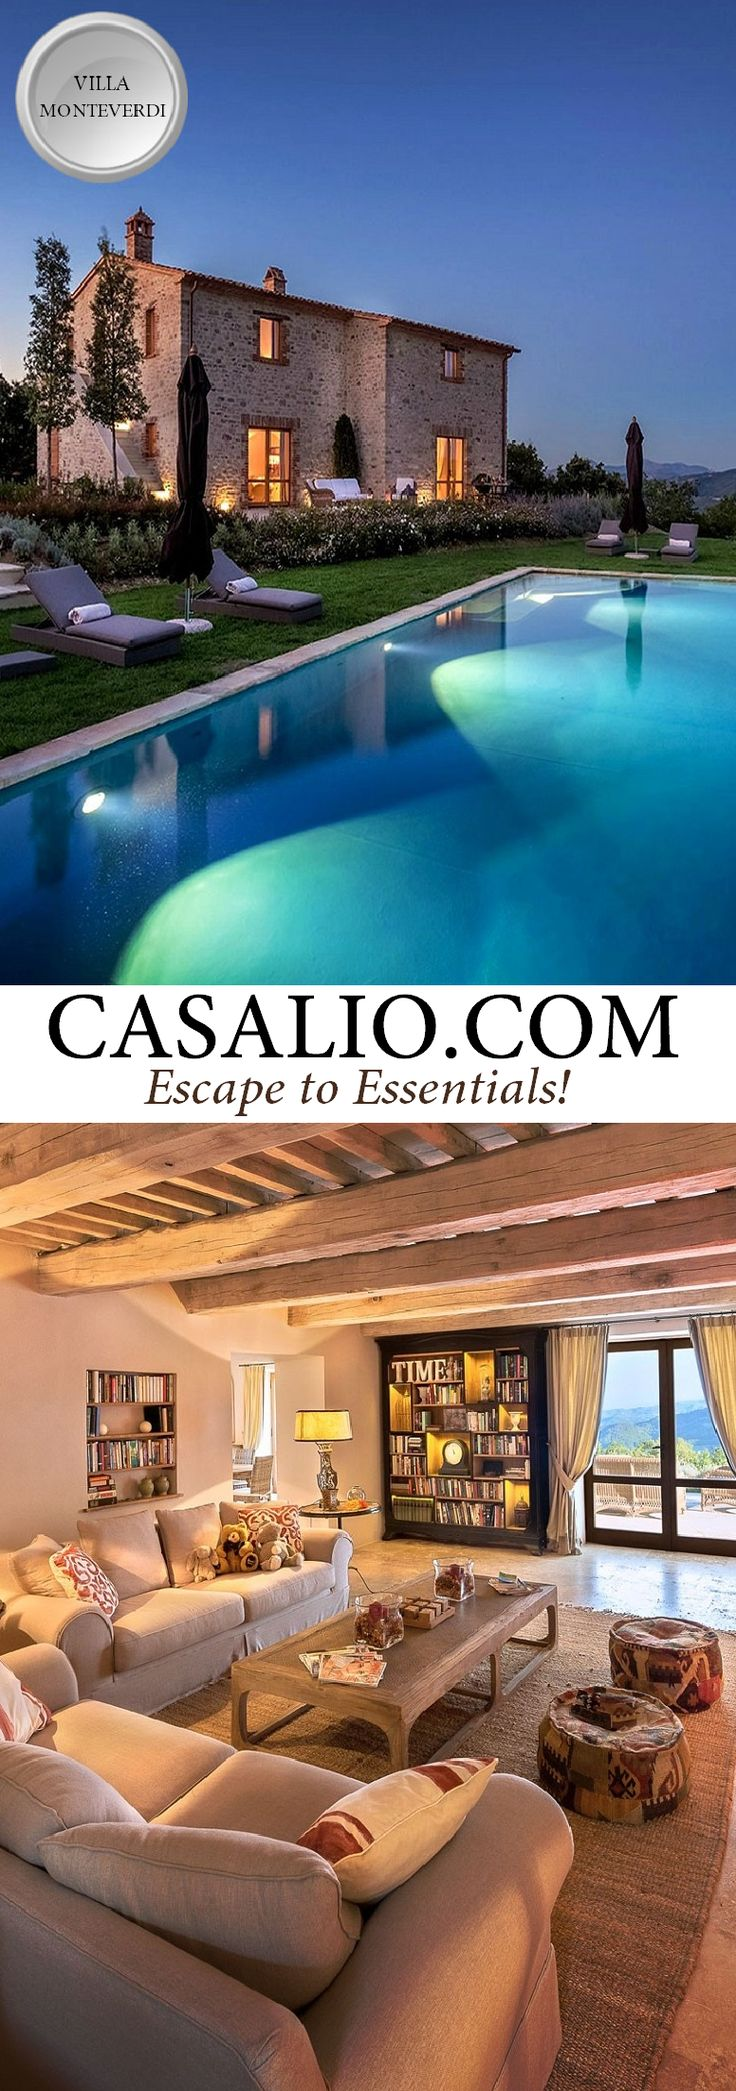 Ferienvilla | Villa Rental Ferienhaus   | www.casalio.com || Villa Monteverdi || Italy - Umbria || 3 bedrooms, private pool, air-conditioning. This fascinating 3 bedrooms villa set on the top of the Mount Elceto is a great example of a glorious restoration in the perfect site. Finest interior design and a long infinity pool that seems to float on the huge valley make the Villa a very special place for a unforgettable holiday.  #Villas #Umbria #Perugia #luxuryTravel #travel.